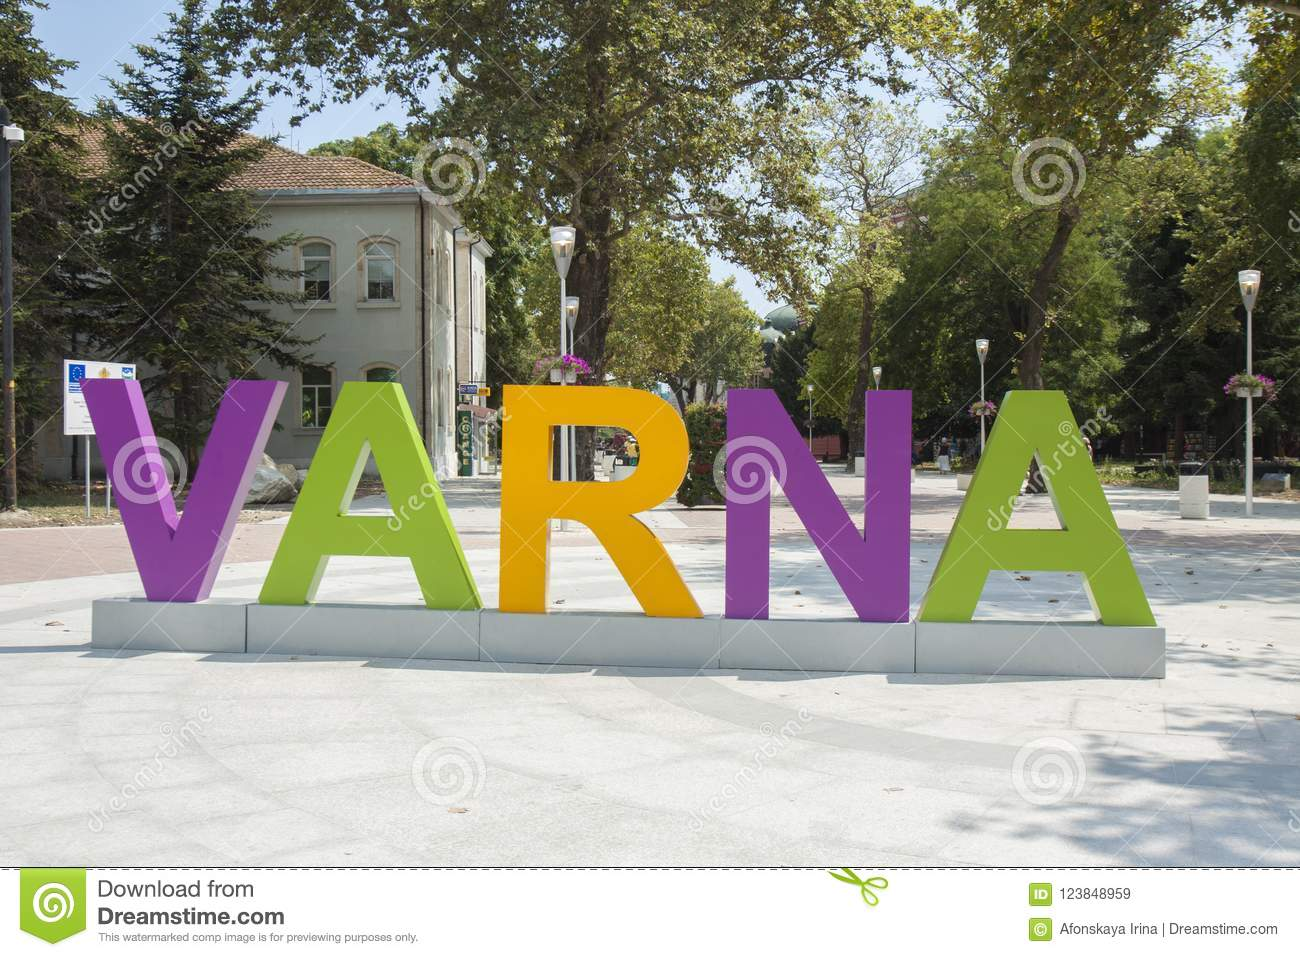 VARNA, BULGARIA - AUGUST 14, 2015: Letters With Name Of Town On